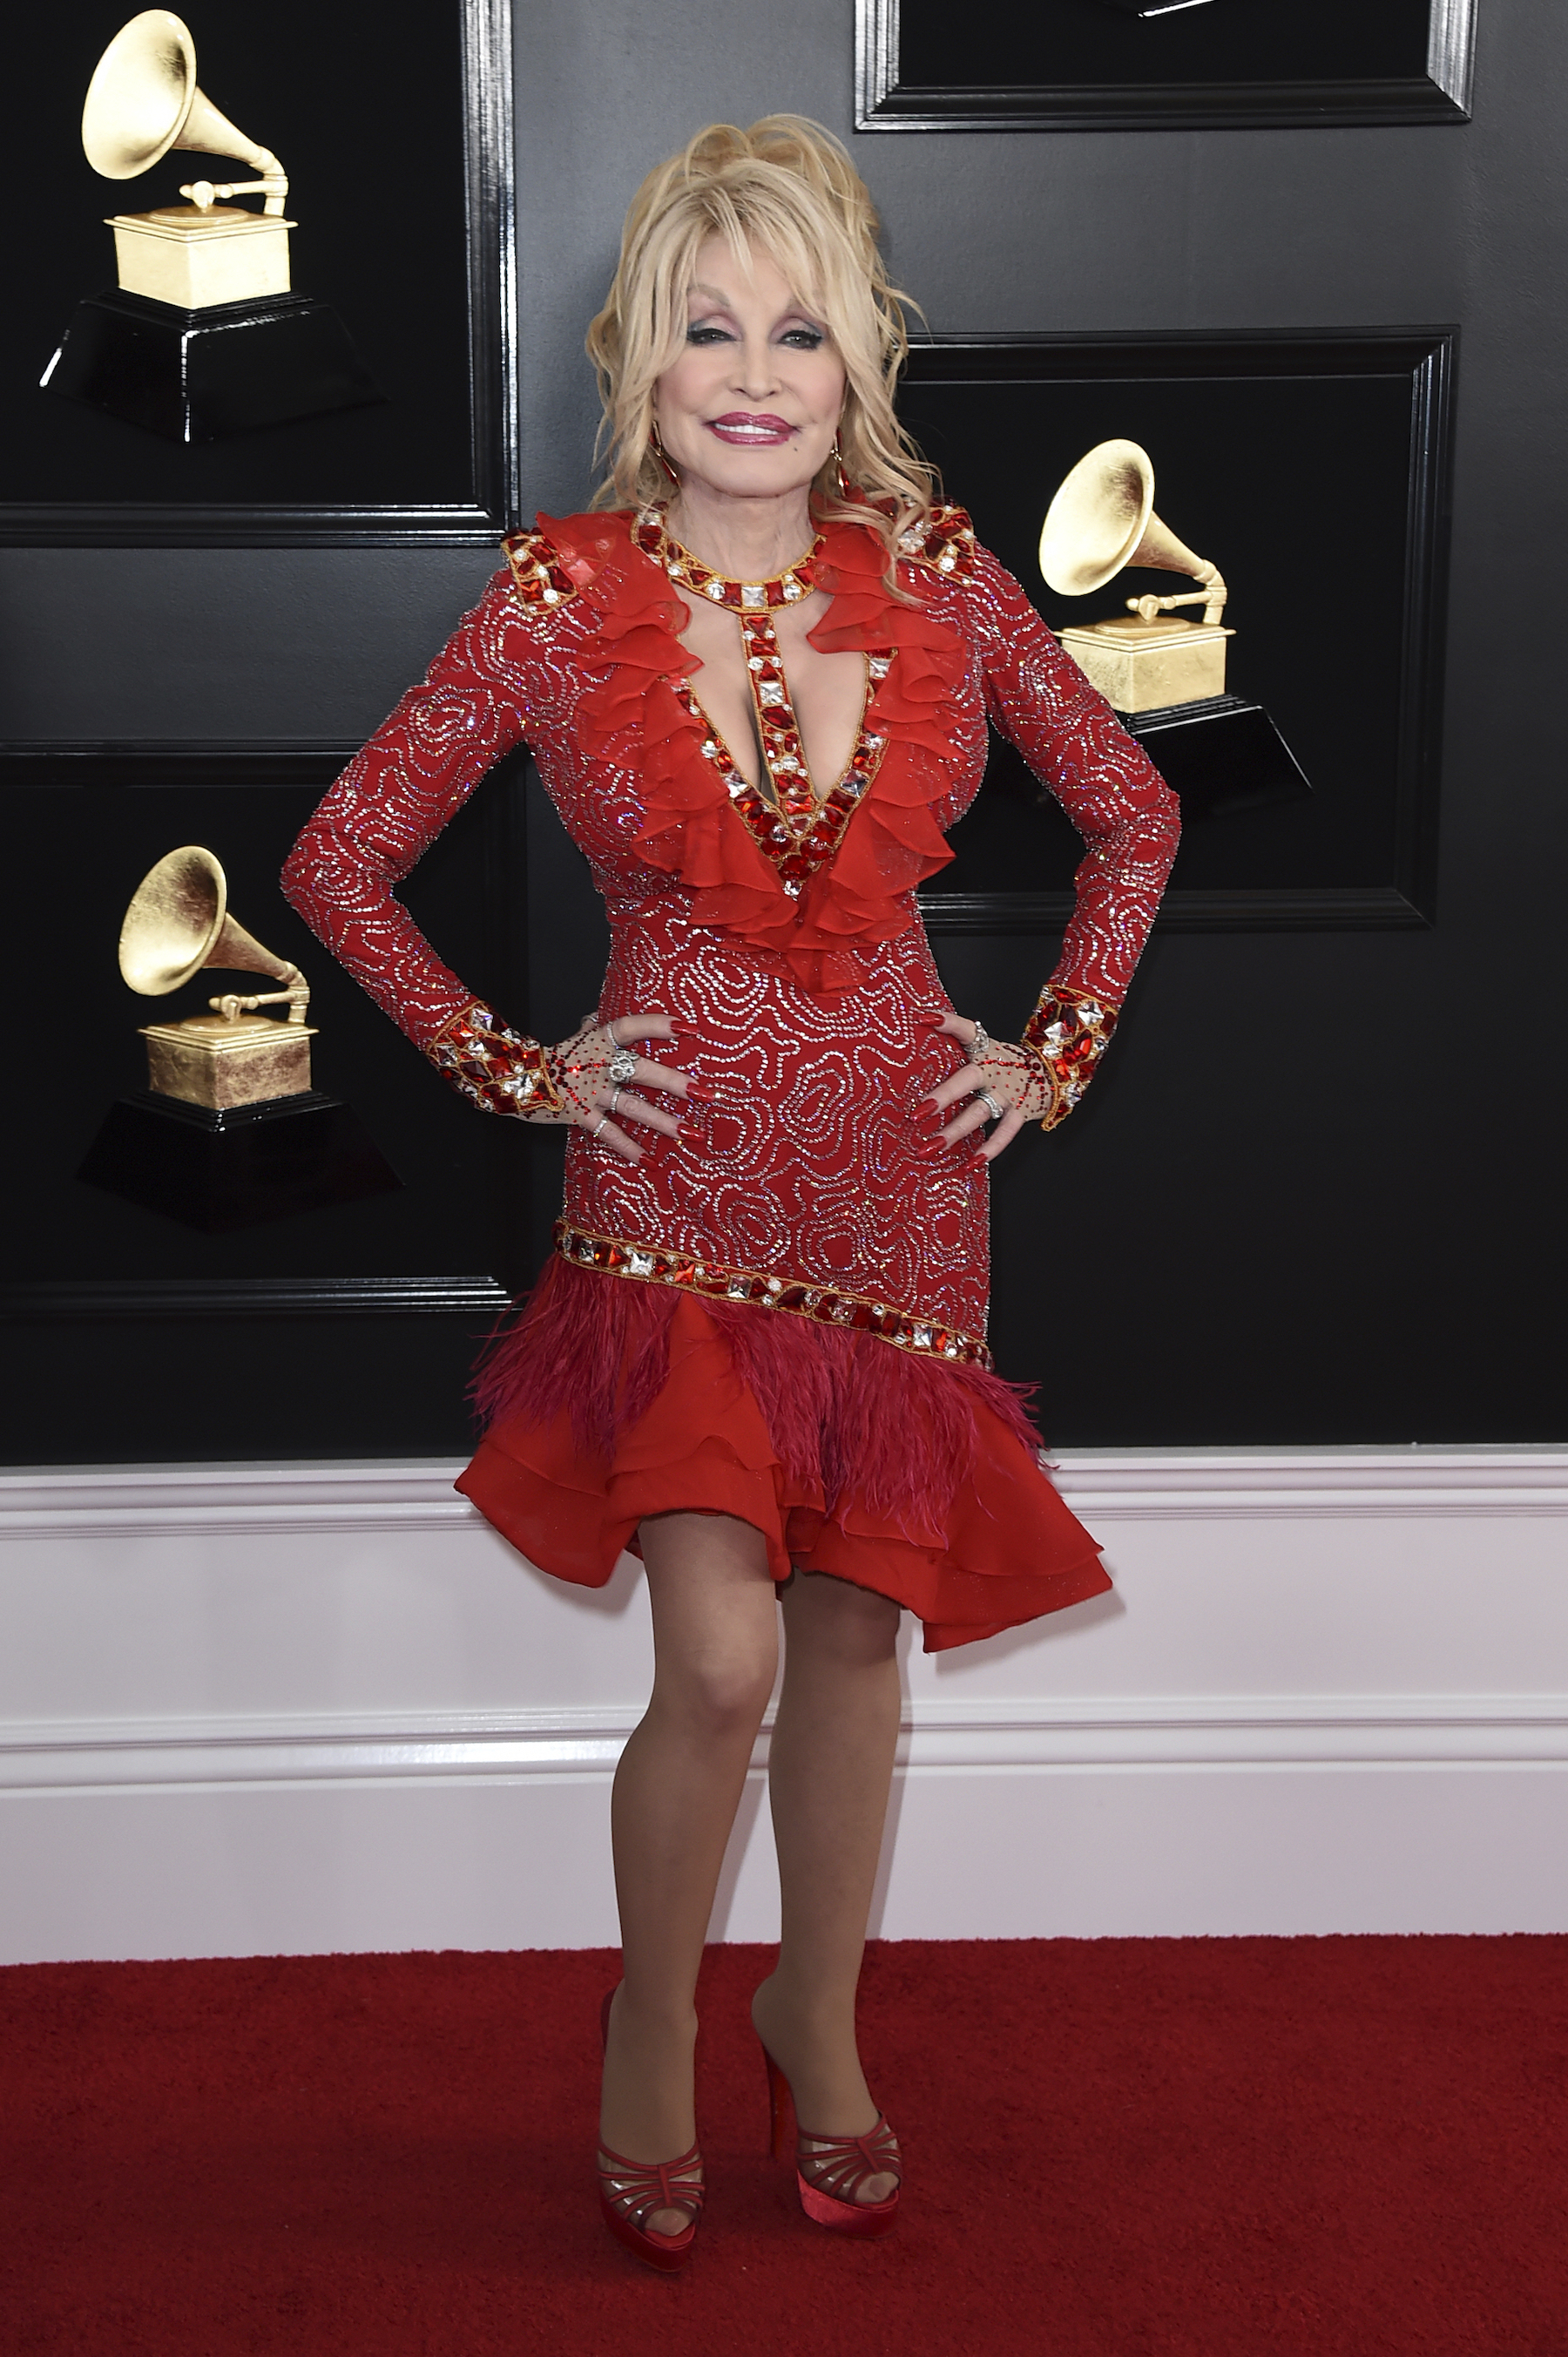 <div class='meta'><div class='origin-logo' data-origin='AP'></div><span class='caption-text' data-credit='Jordan Strauss/Invision/AP'>Dolly Parton arrives at the 61st annual Grammy Awards at the Staples Center on Sunday, Feb. 10, 2019, in Los Angeles.</span></div>